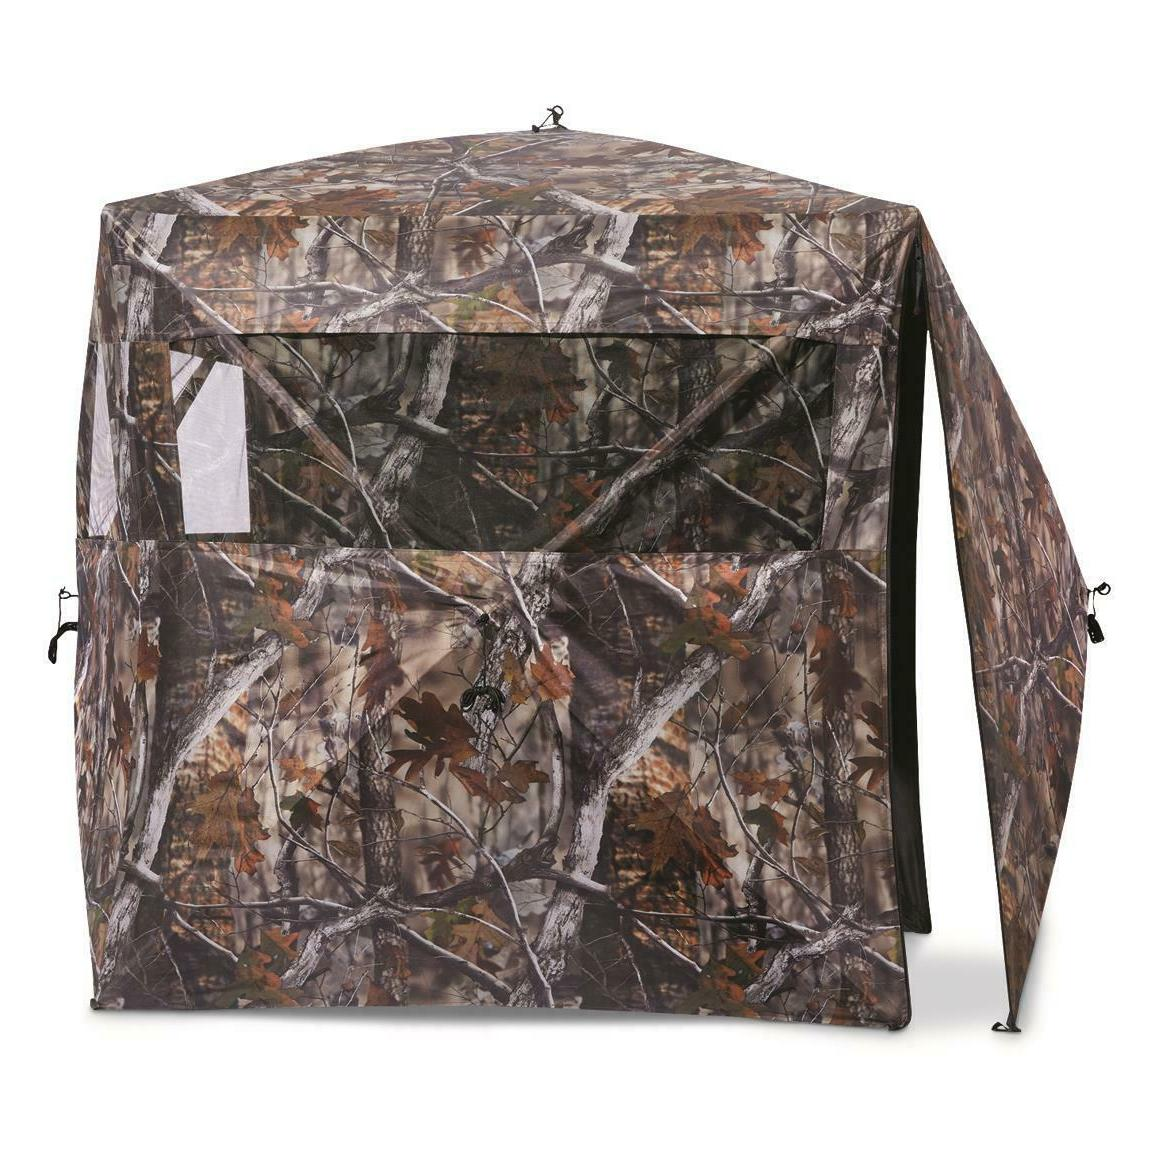 Guide Gear Hunting Blind NEW & FREE